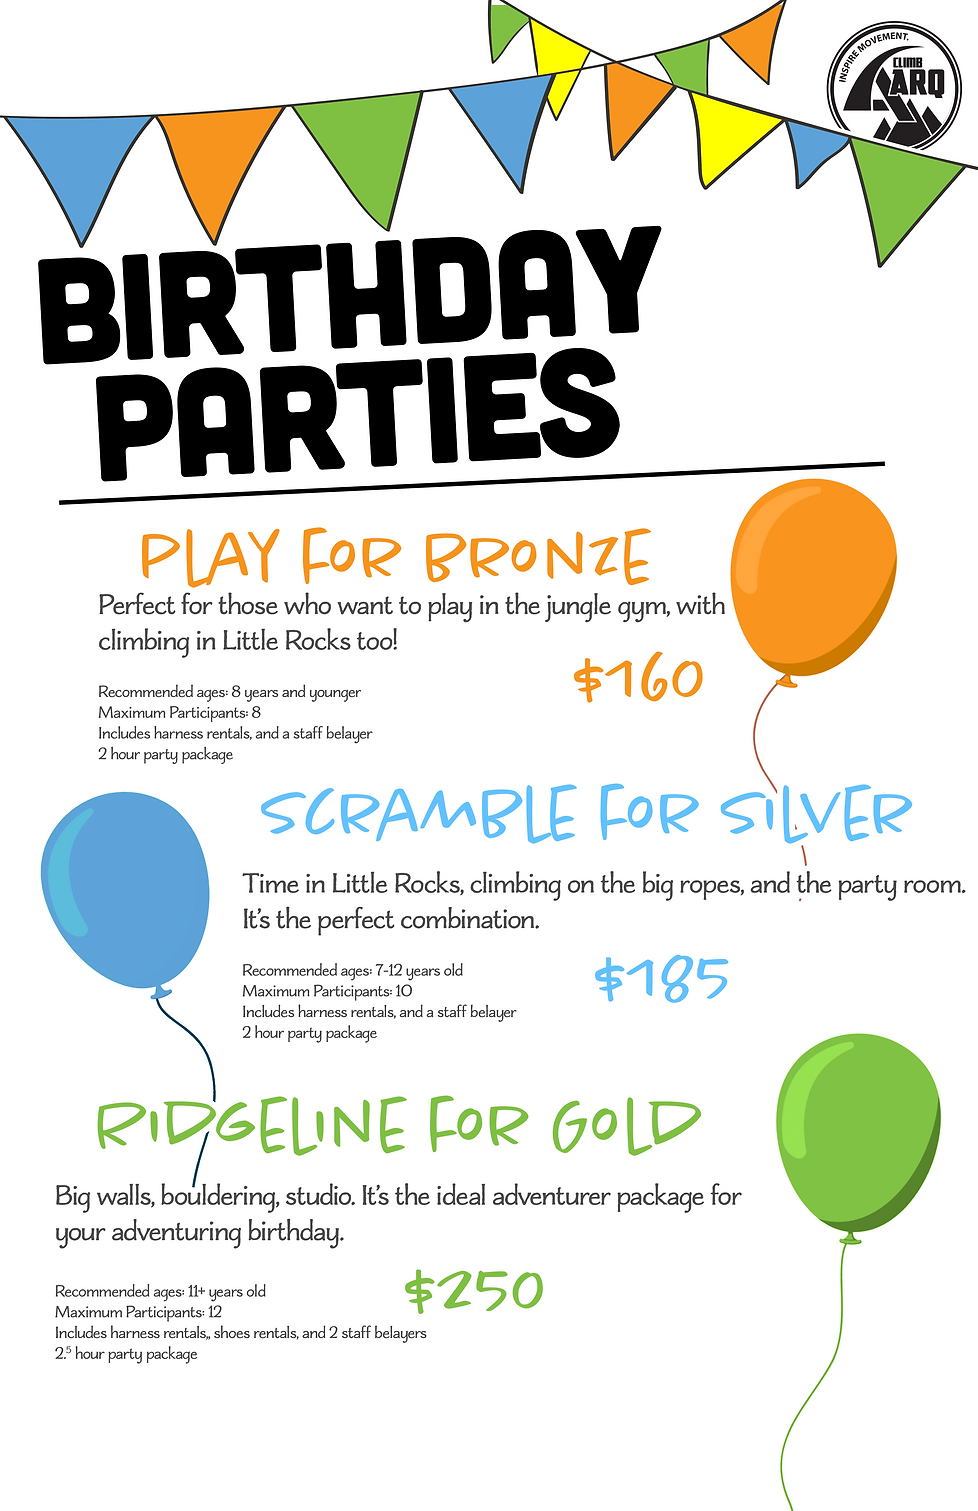 birthday parties 2020.png